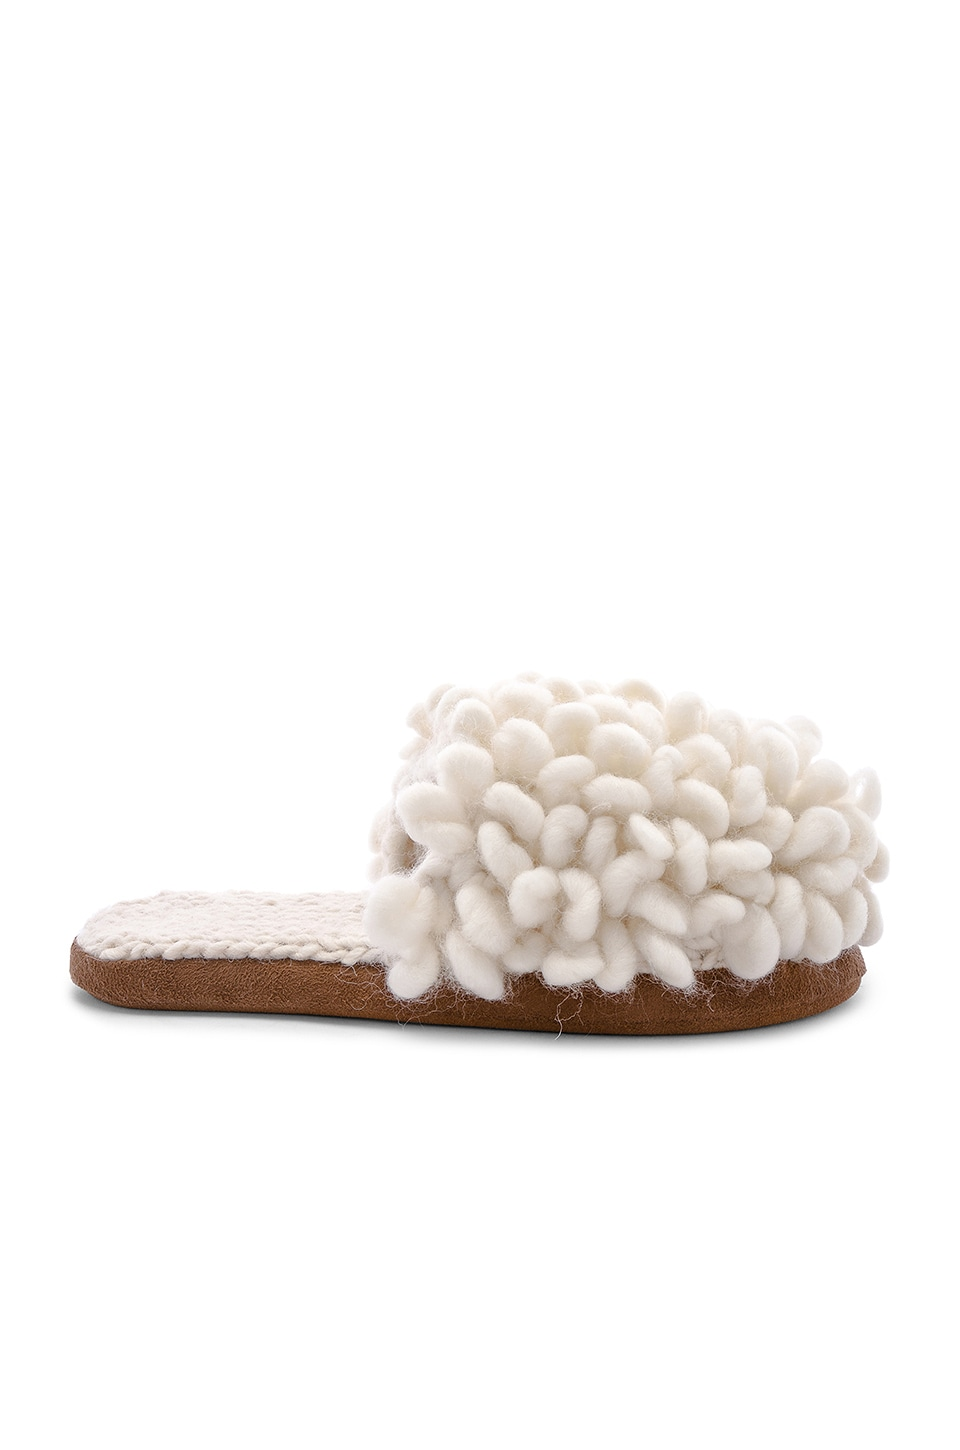 ARIANA BOHLING Loop Scuff Slipper in Natural